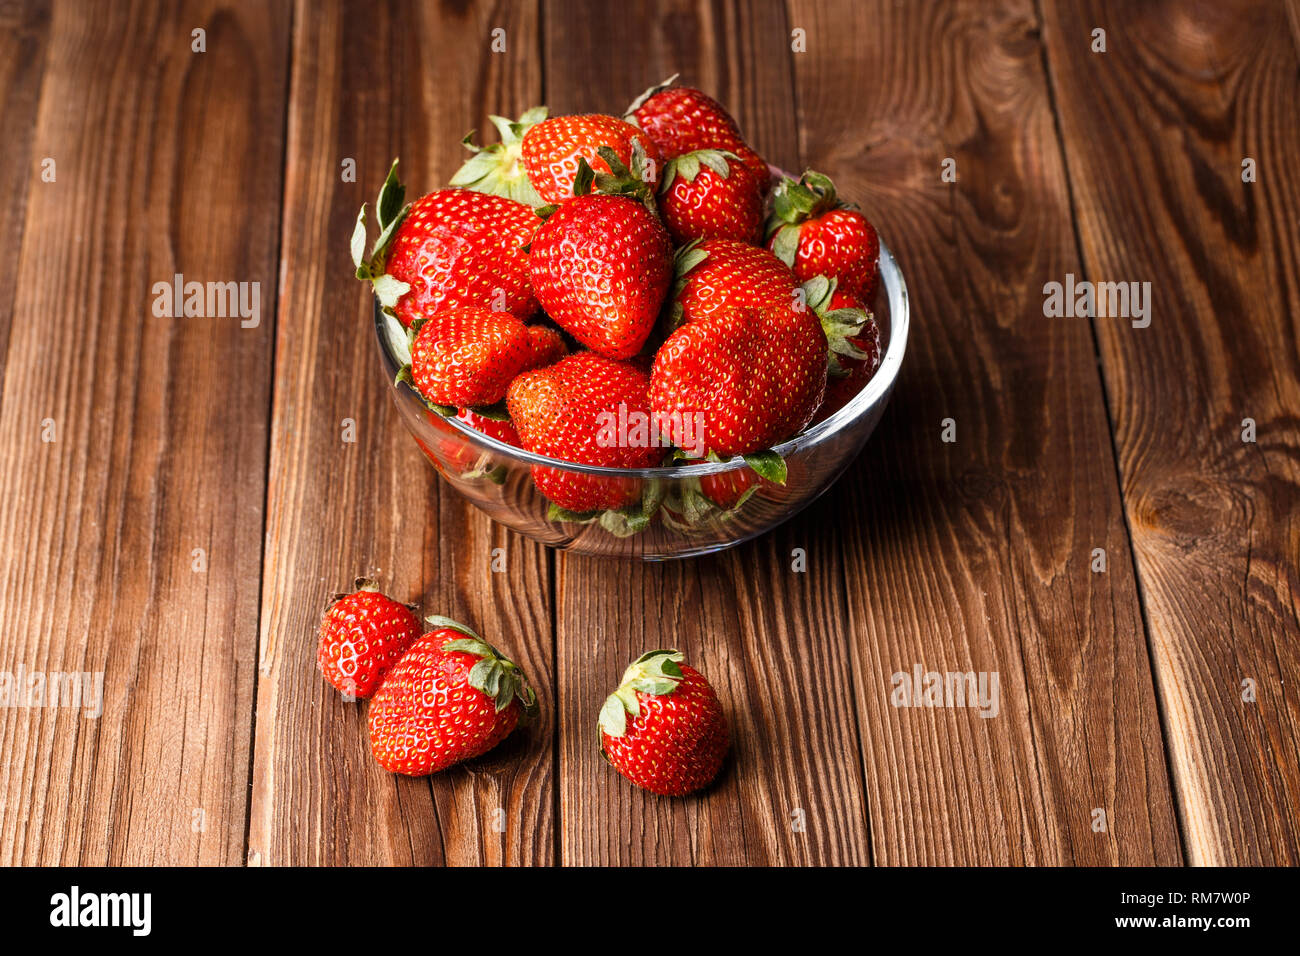 Fresh strawberries on wooden table - Stock Image